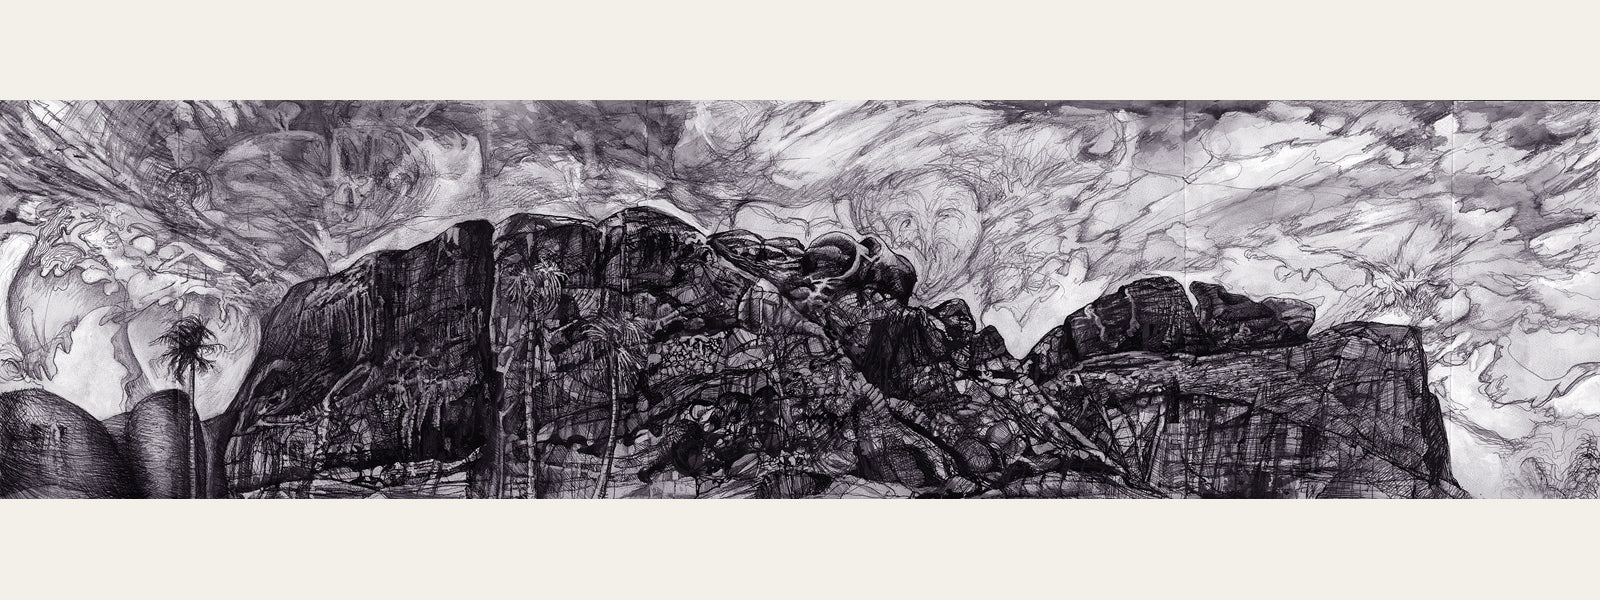 CAMELBACK, Etching: Limited Edition of 20